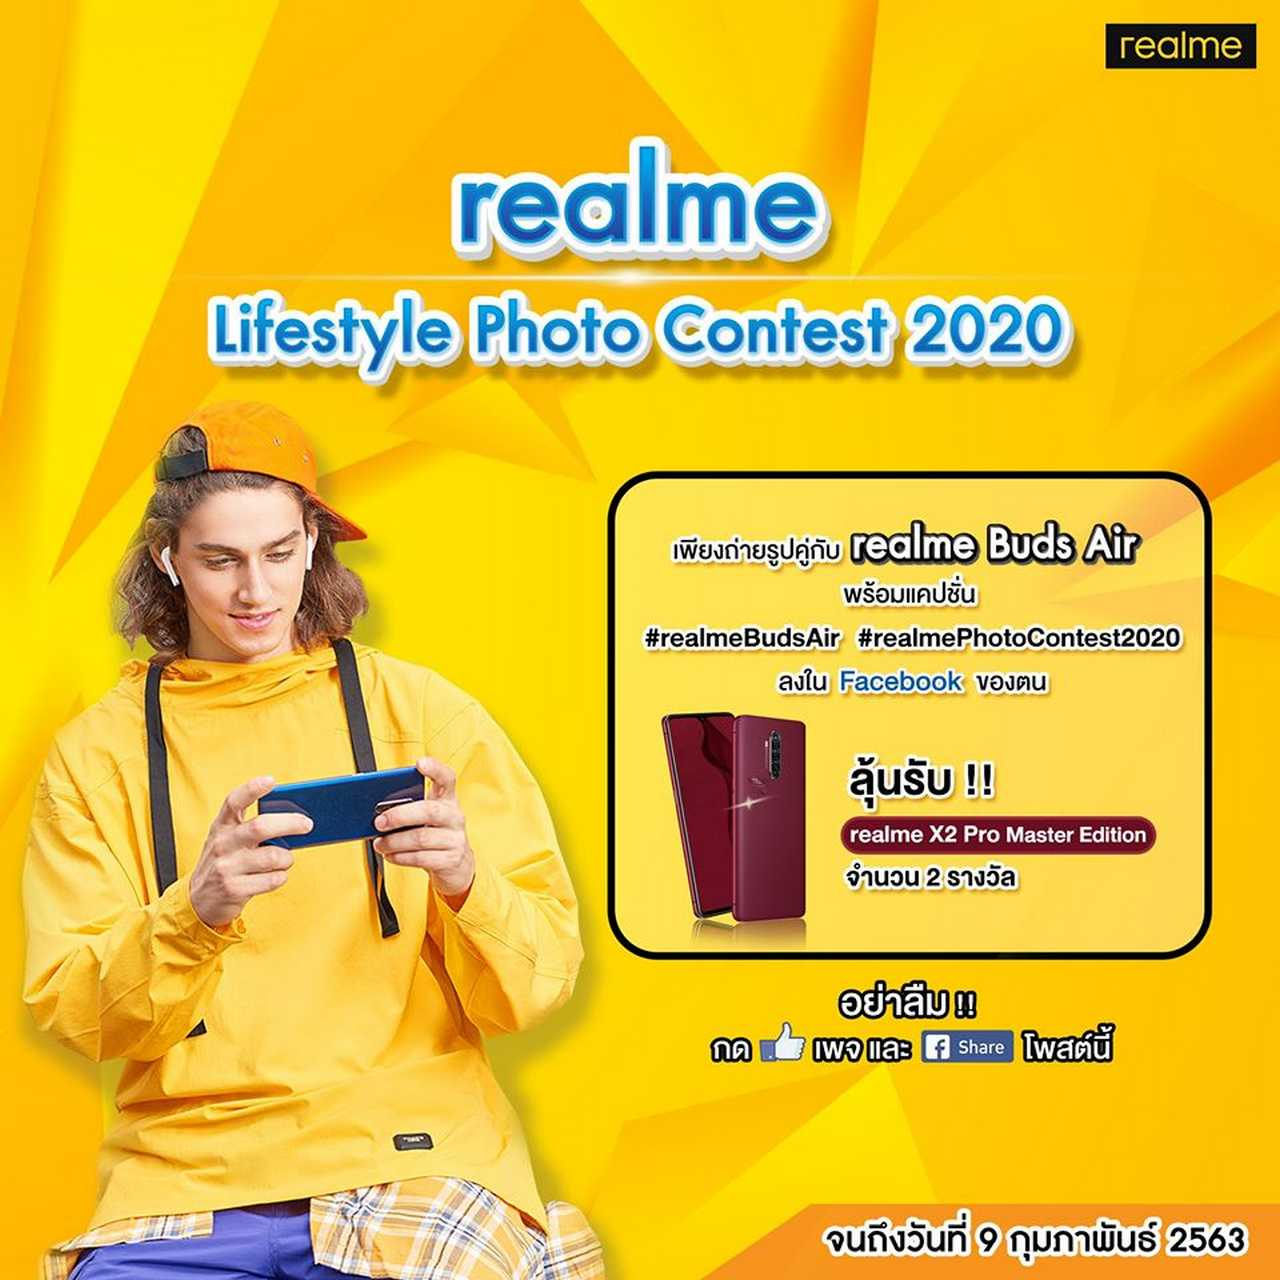 realme Lifestyle Photo Contest 2020